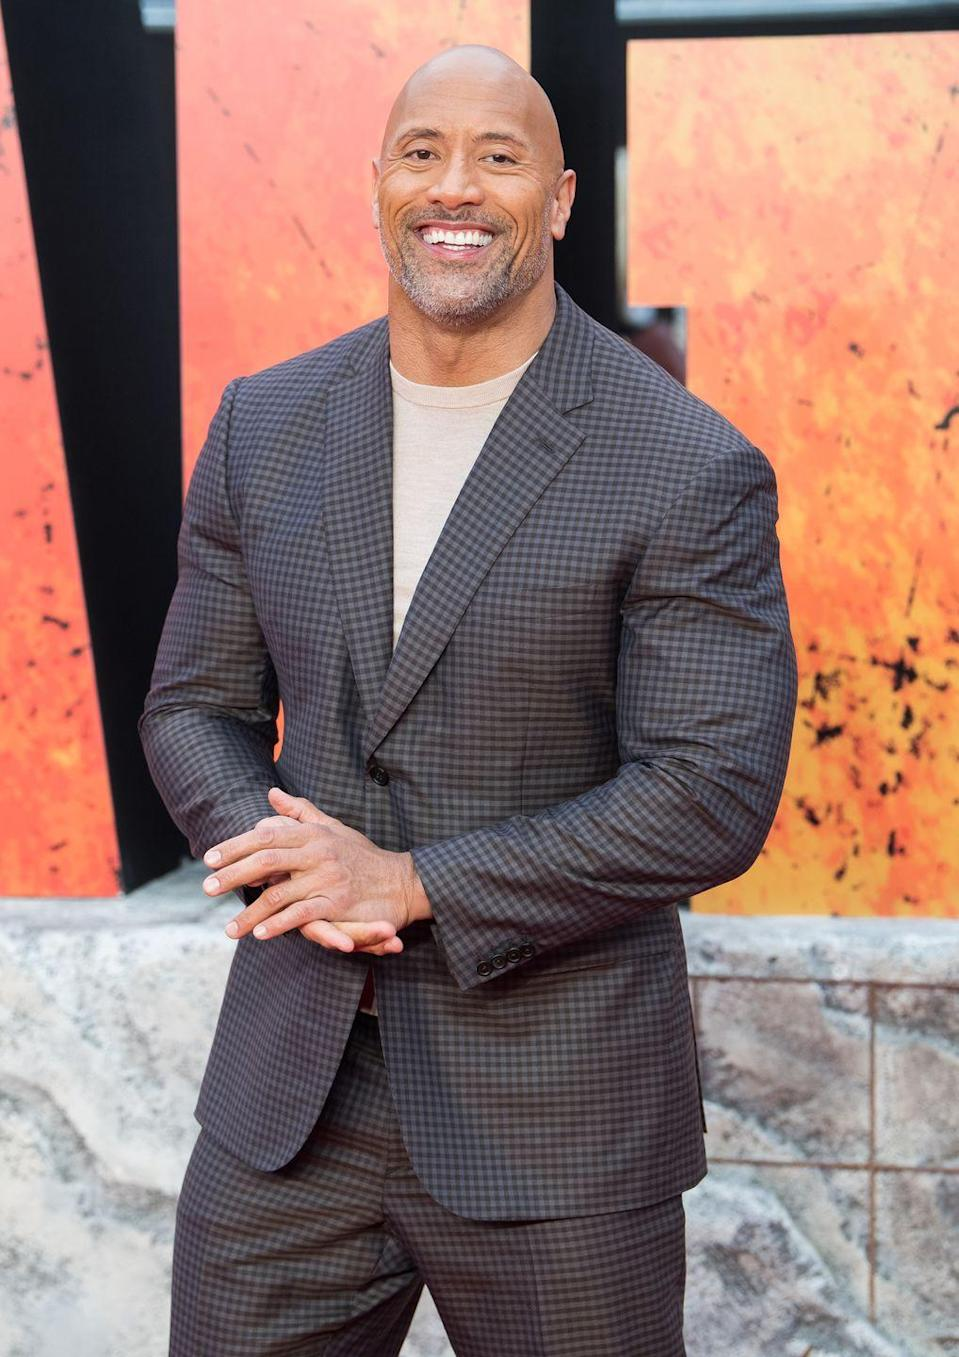 "<p>Dwayne Johnson has taken a leaf out of <a href=""https://www.elle.com/uk/life-and-culture/culture/a32002199/will-ferrell-hand-washing-coronavirus/"" rel=""nofollow noopener"" target=""_blank"" data-ylk=""slk:Will Ferrell"" class=""link rapid-noclick-resp"">Will Ferrell</a>'s book and updated his hand washing routine with his daughter Tia during Covid-19.</p><p>Sharing his 'sheltering at home, pre daddy's shower ritual' on Instagram, the 47-year-old showed his hand-washing technique with his daughter, revealing that the little tot demands he sings the rap portion of his song 'You're Welcome' from the hit Disney film Moana.</p><p>'We realized a few weeks ago that the rap portion of the song is perfect timing when getting your little ones to have fun washing their hands,' Johnson added.</p><p>In the video, Tia interrupts he father's chat to say: 'Give me the song.'</p><p><a class=""link rapid-noclick-resp"" href=""https://www.instagram.com/p/B-fZQj1nUB0/"" rel=""nofollow noopener"" target=""_blank"" data-ylk=""slk:WATCH THE VIDEO"">WATCH THE VIDEO</a></p>"